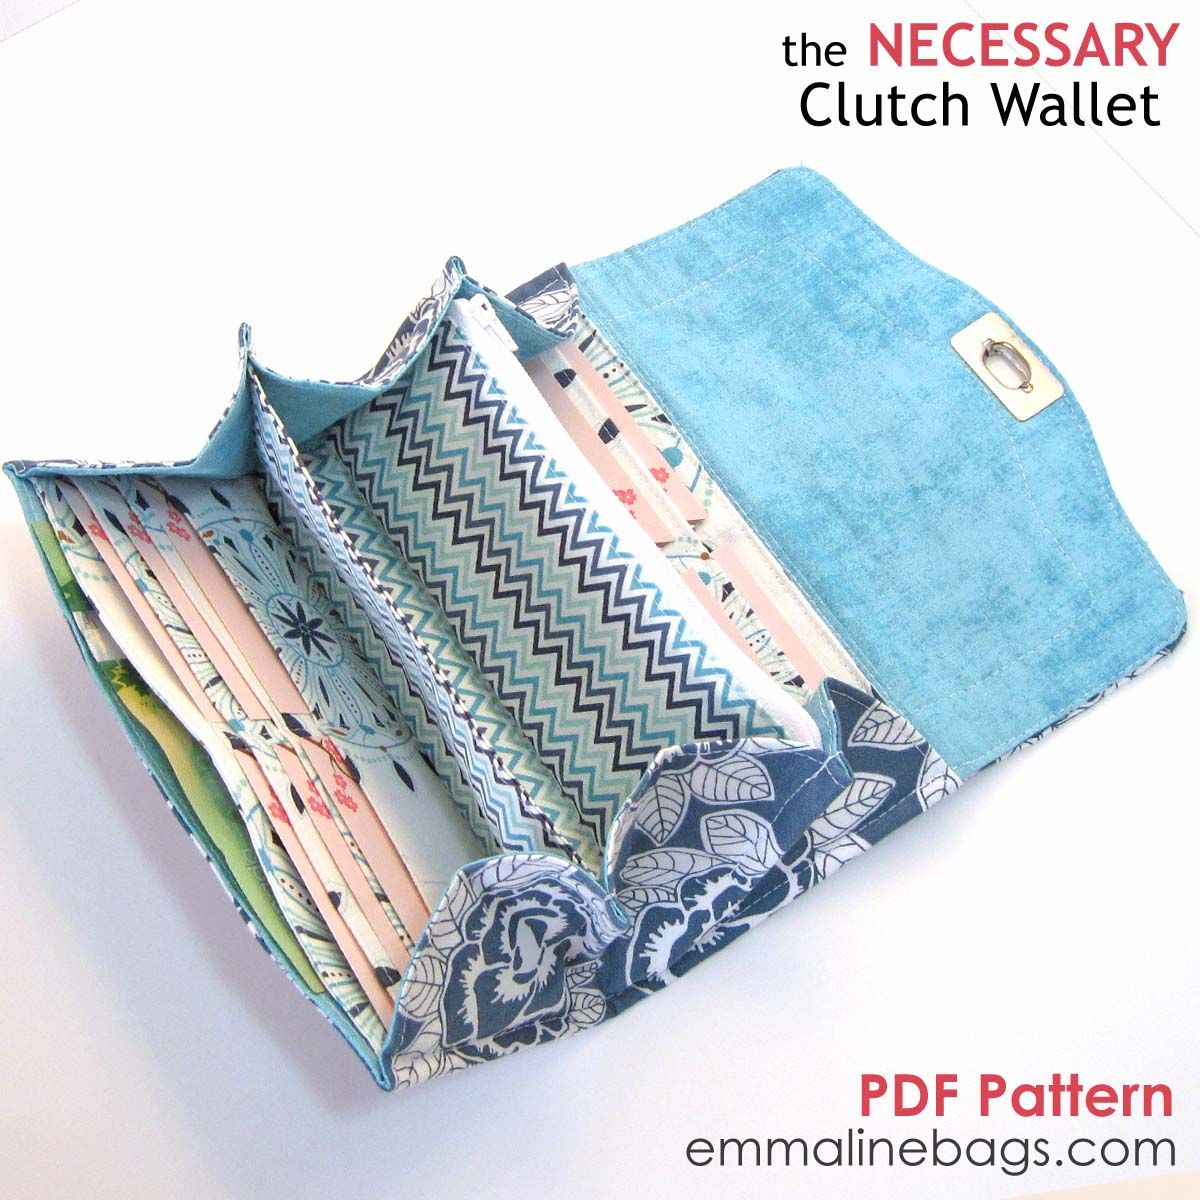 Pdf the necessary clutch wallet clutch wallet sewing patterns pdf the necessary clutch wallet wallet sewing patternbag jeuxipadfo Choice Image